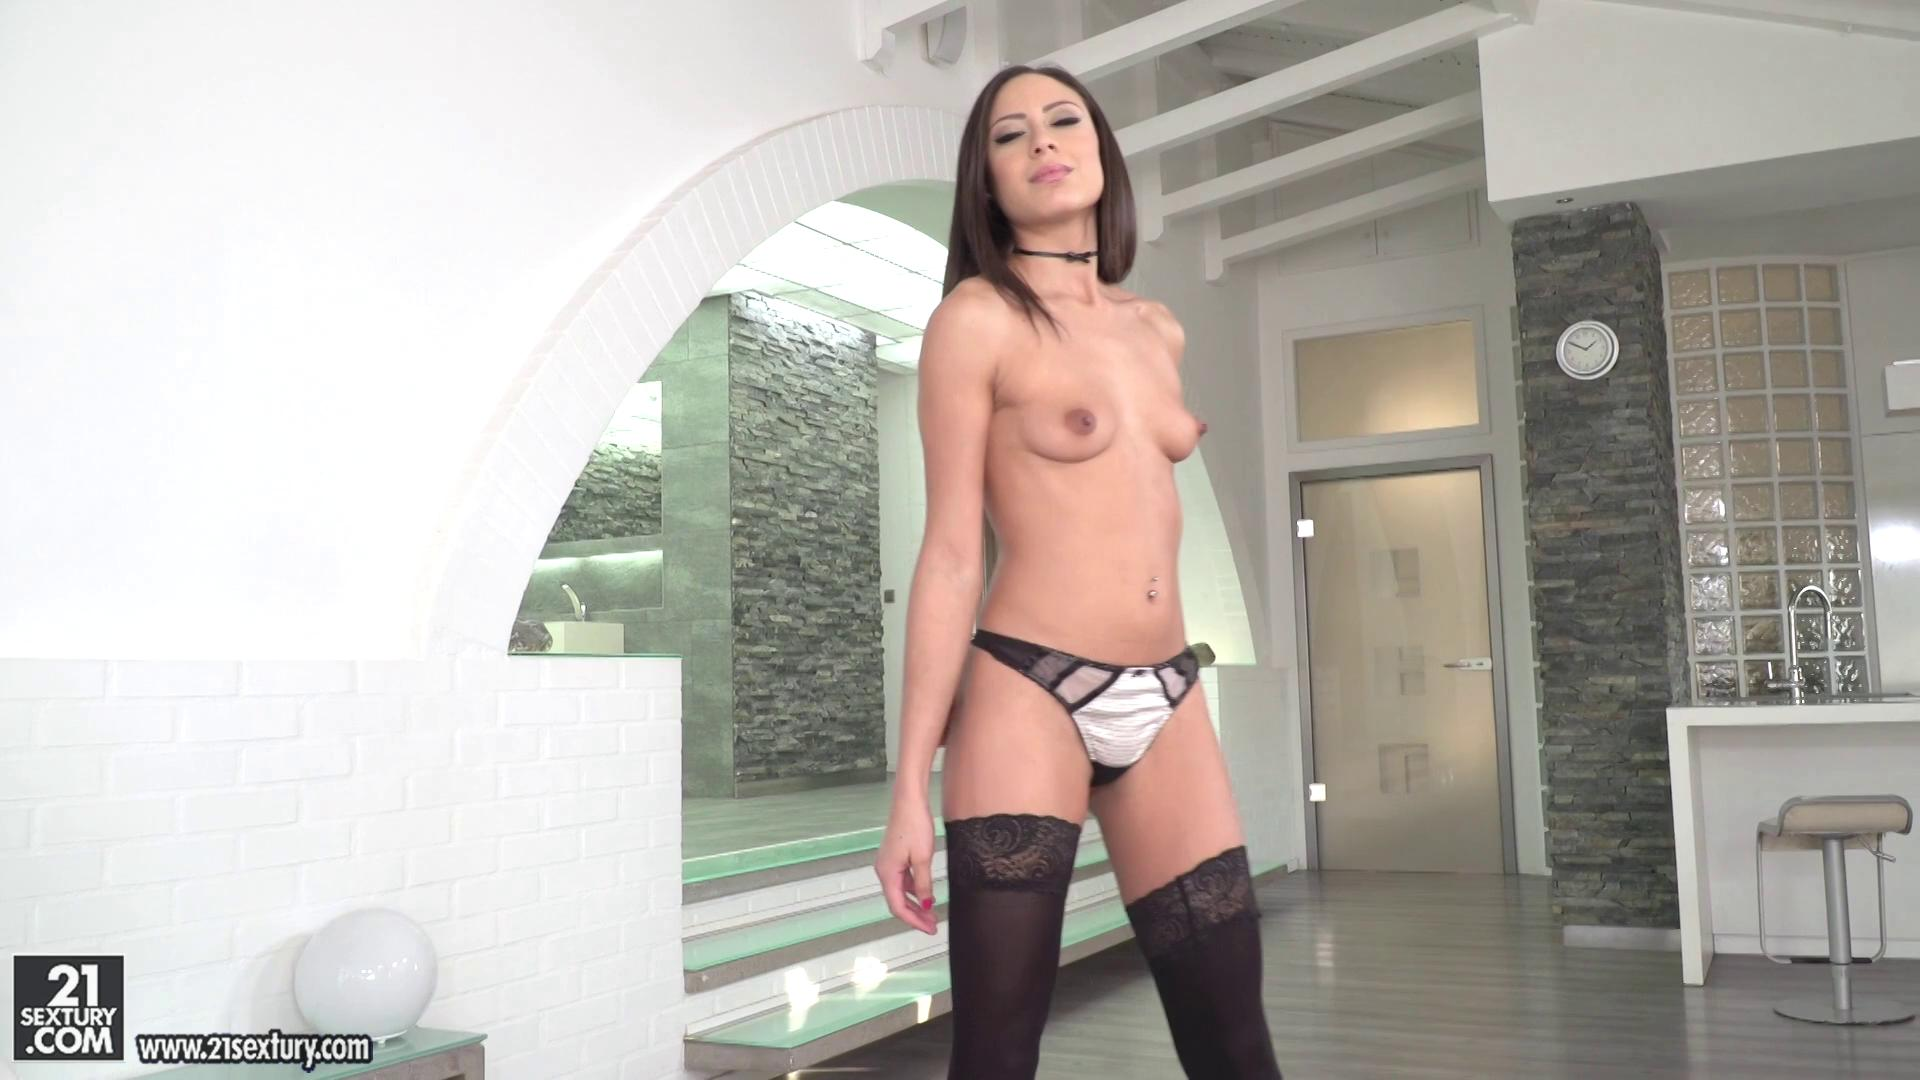 PixAndVideo – Cassie Coming With Cassie